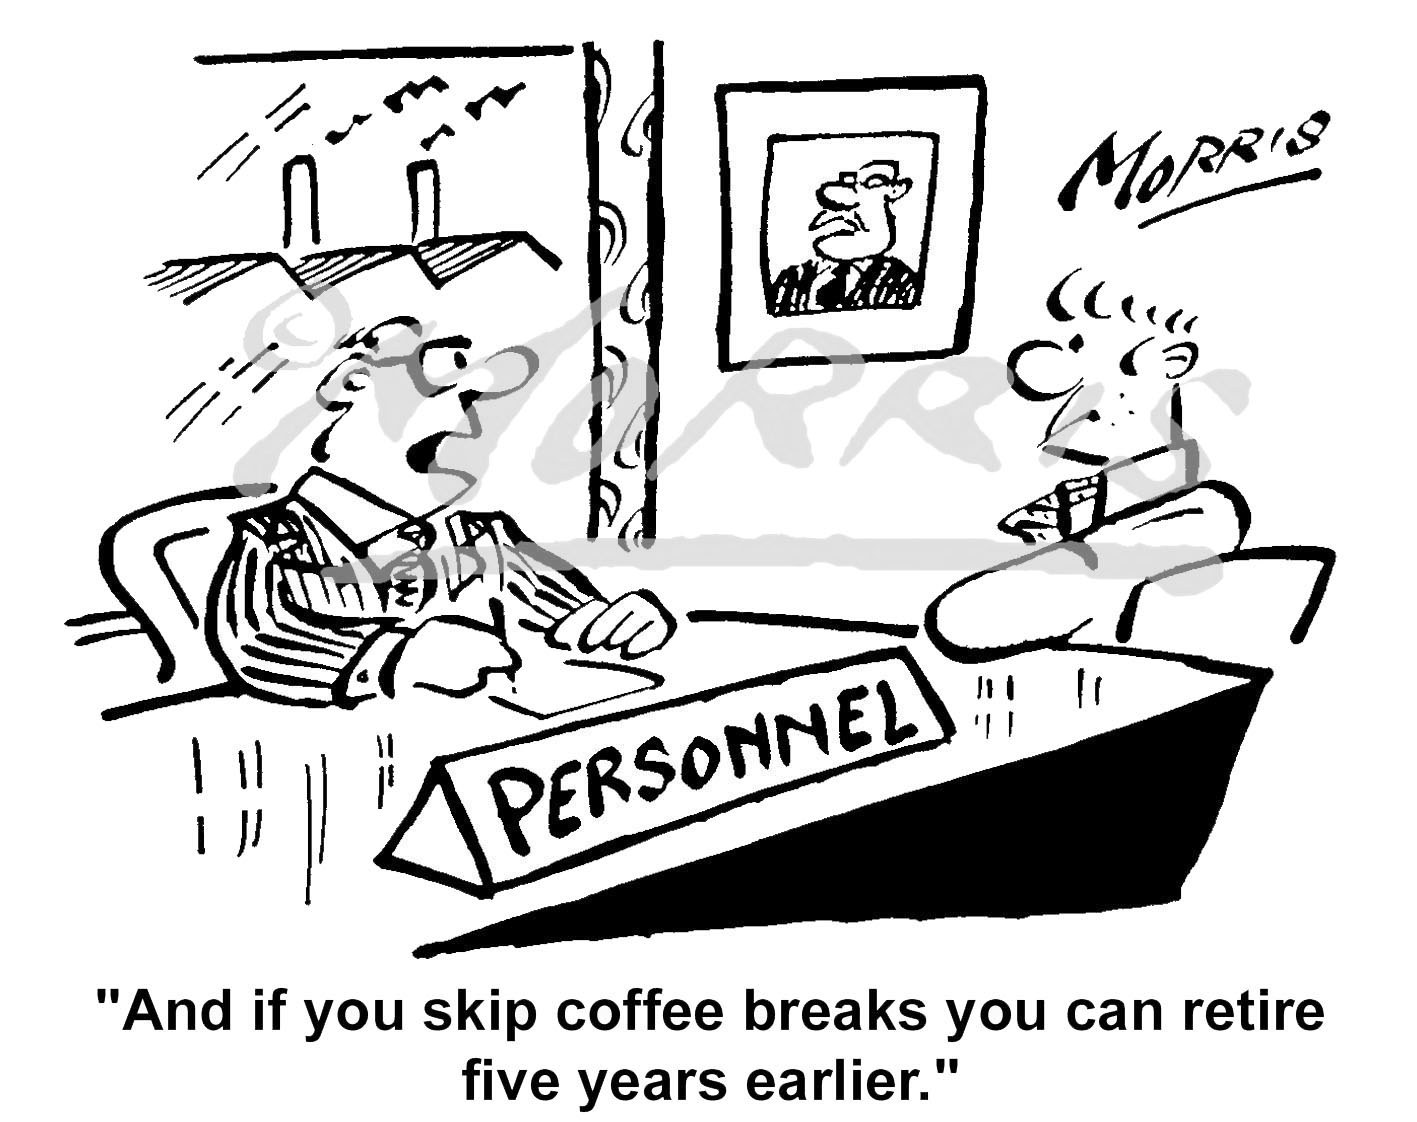 Retirement cartoon, Early retirement cartoon – Ref: 4285bw